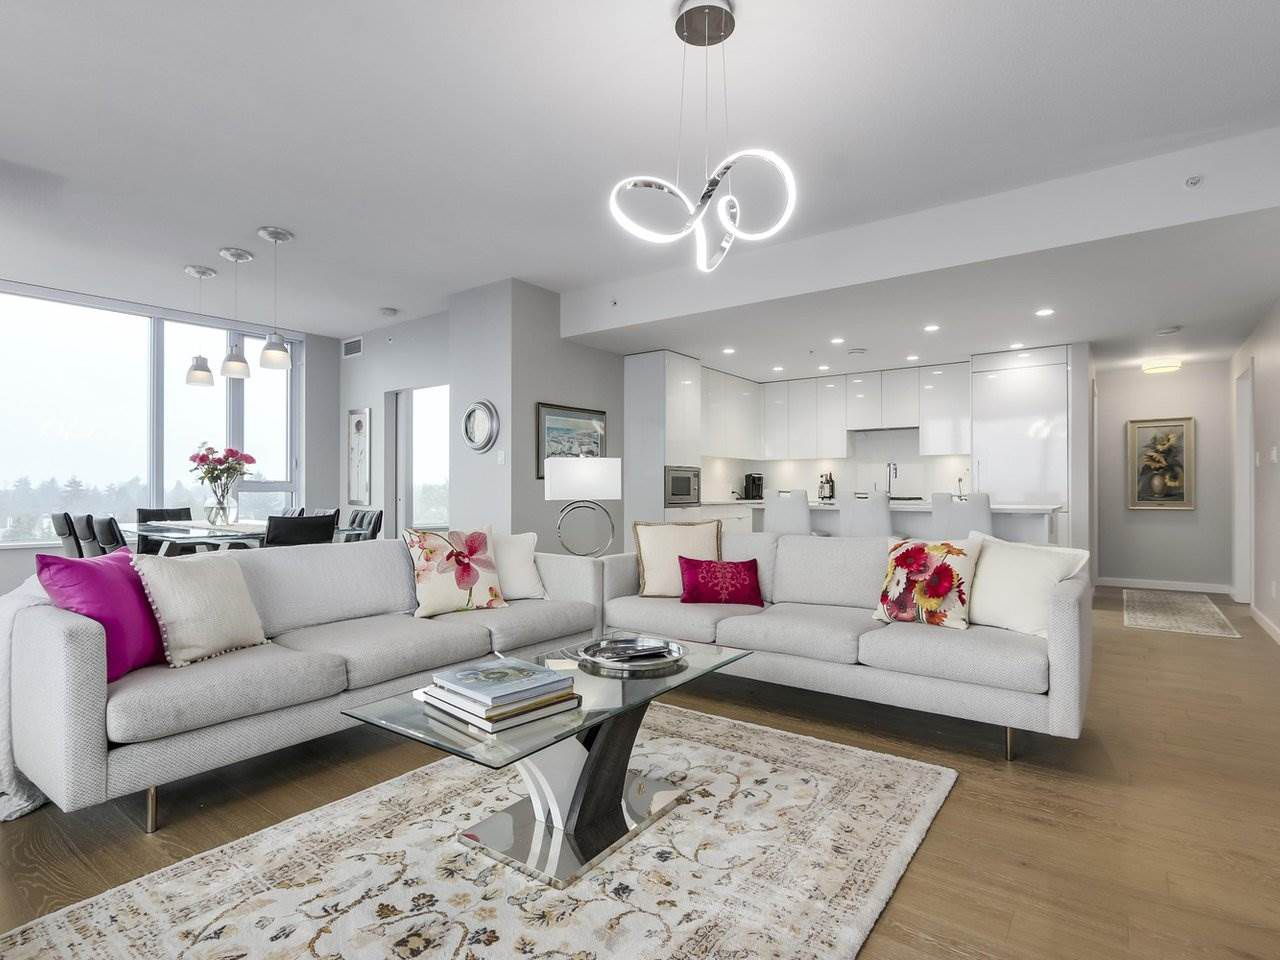 """Main Photo: 910 2888 CAMBIE Street in Vancouver: Fairview VW Condo for sale in """"The Spot"""" (Vancouver West)  : MLS®# R2343734"""